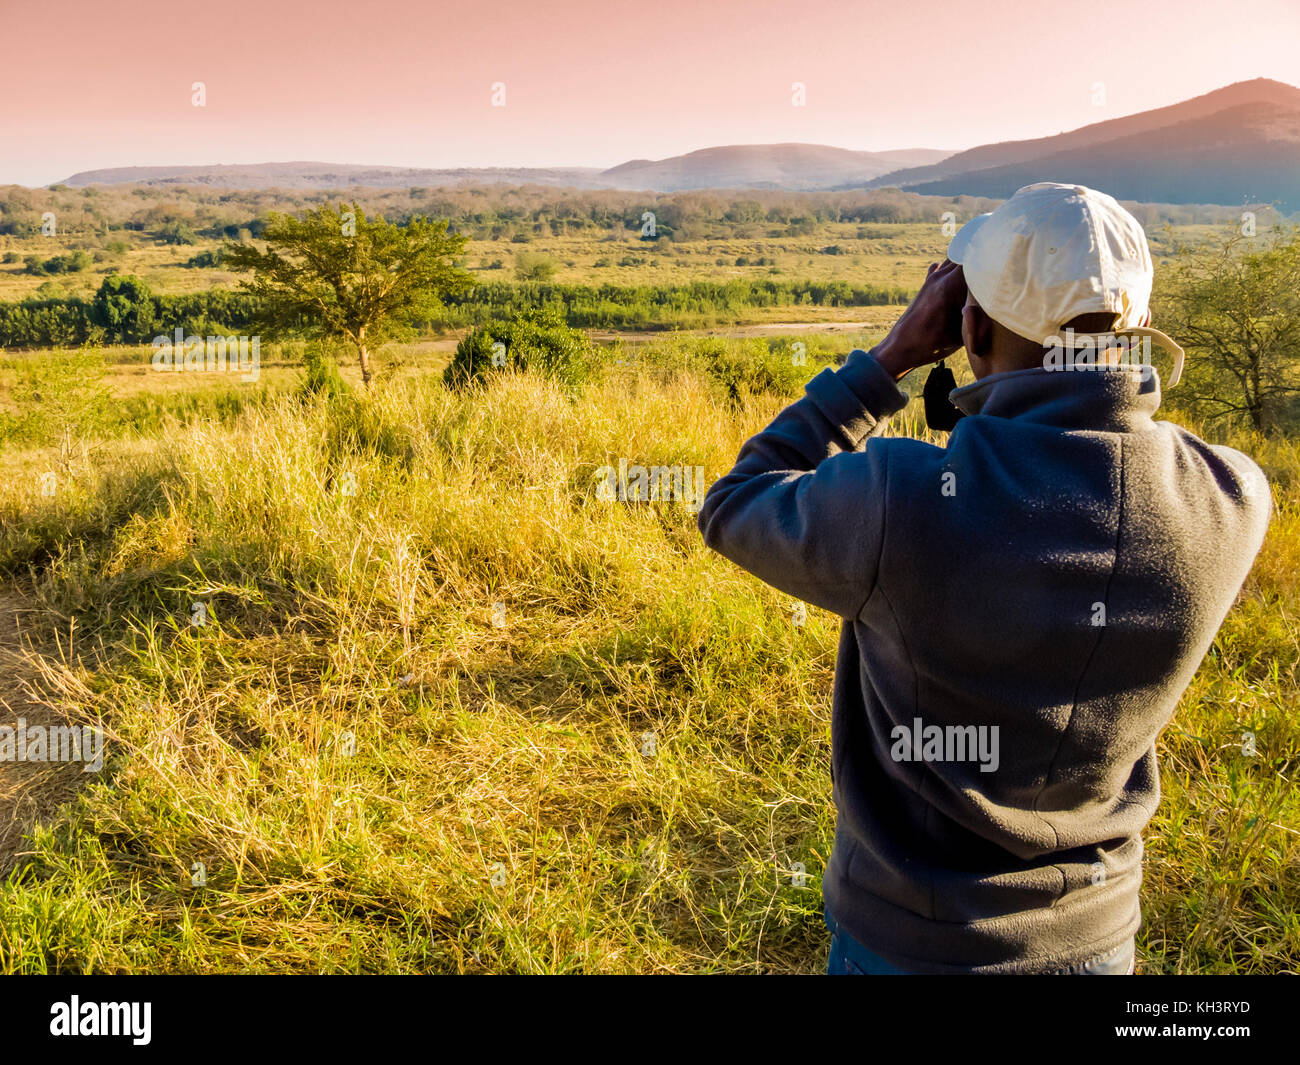 South Africa, ranger looking through binoculars in search of animals during a safari - Stock Image